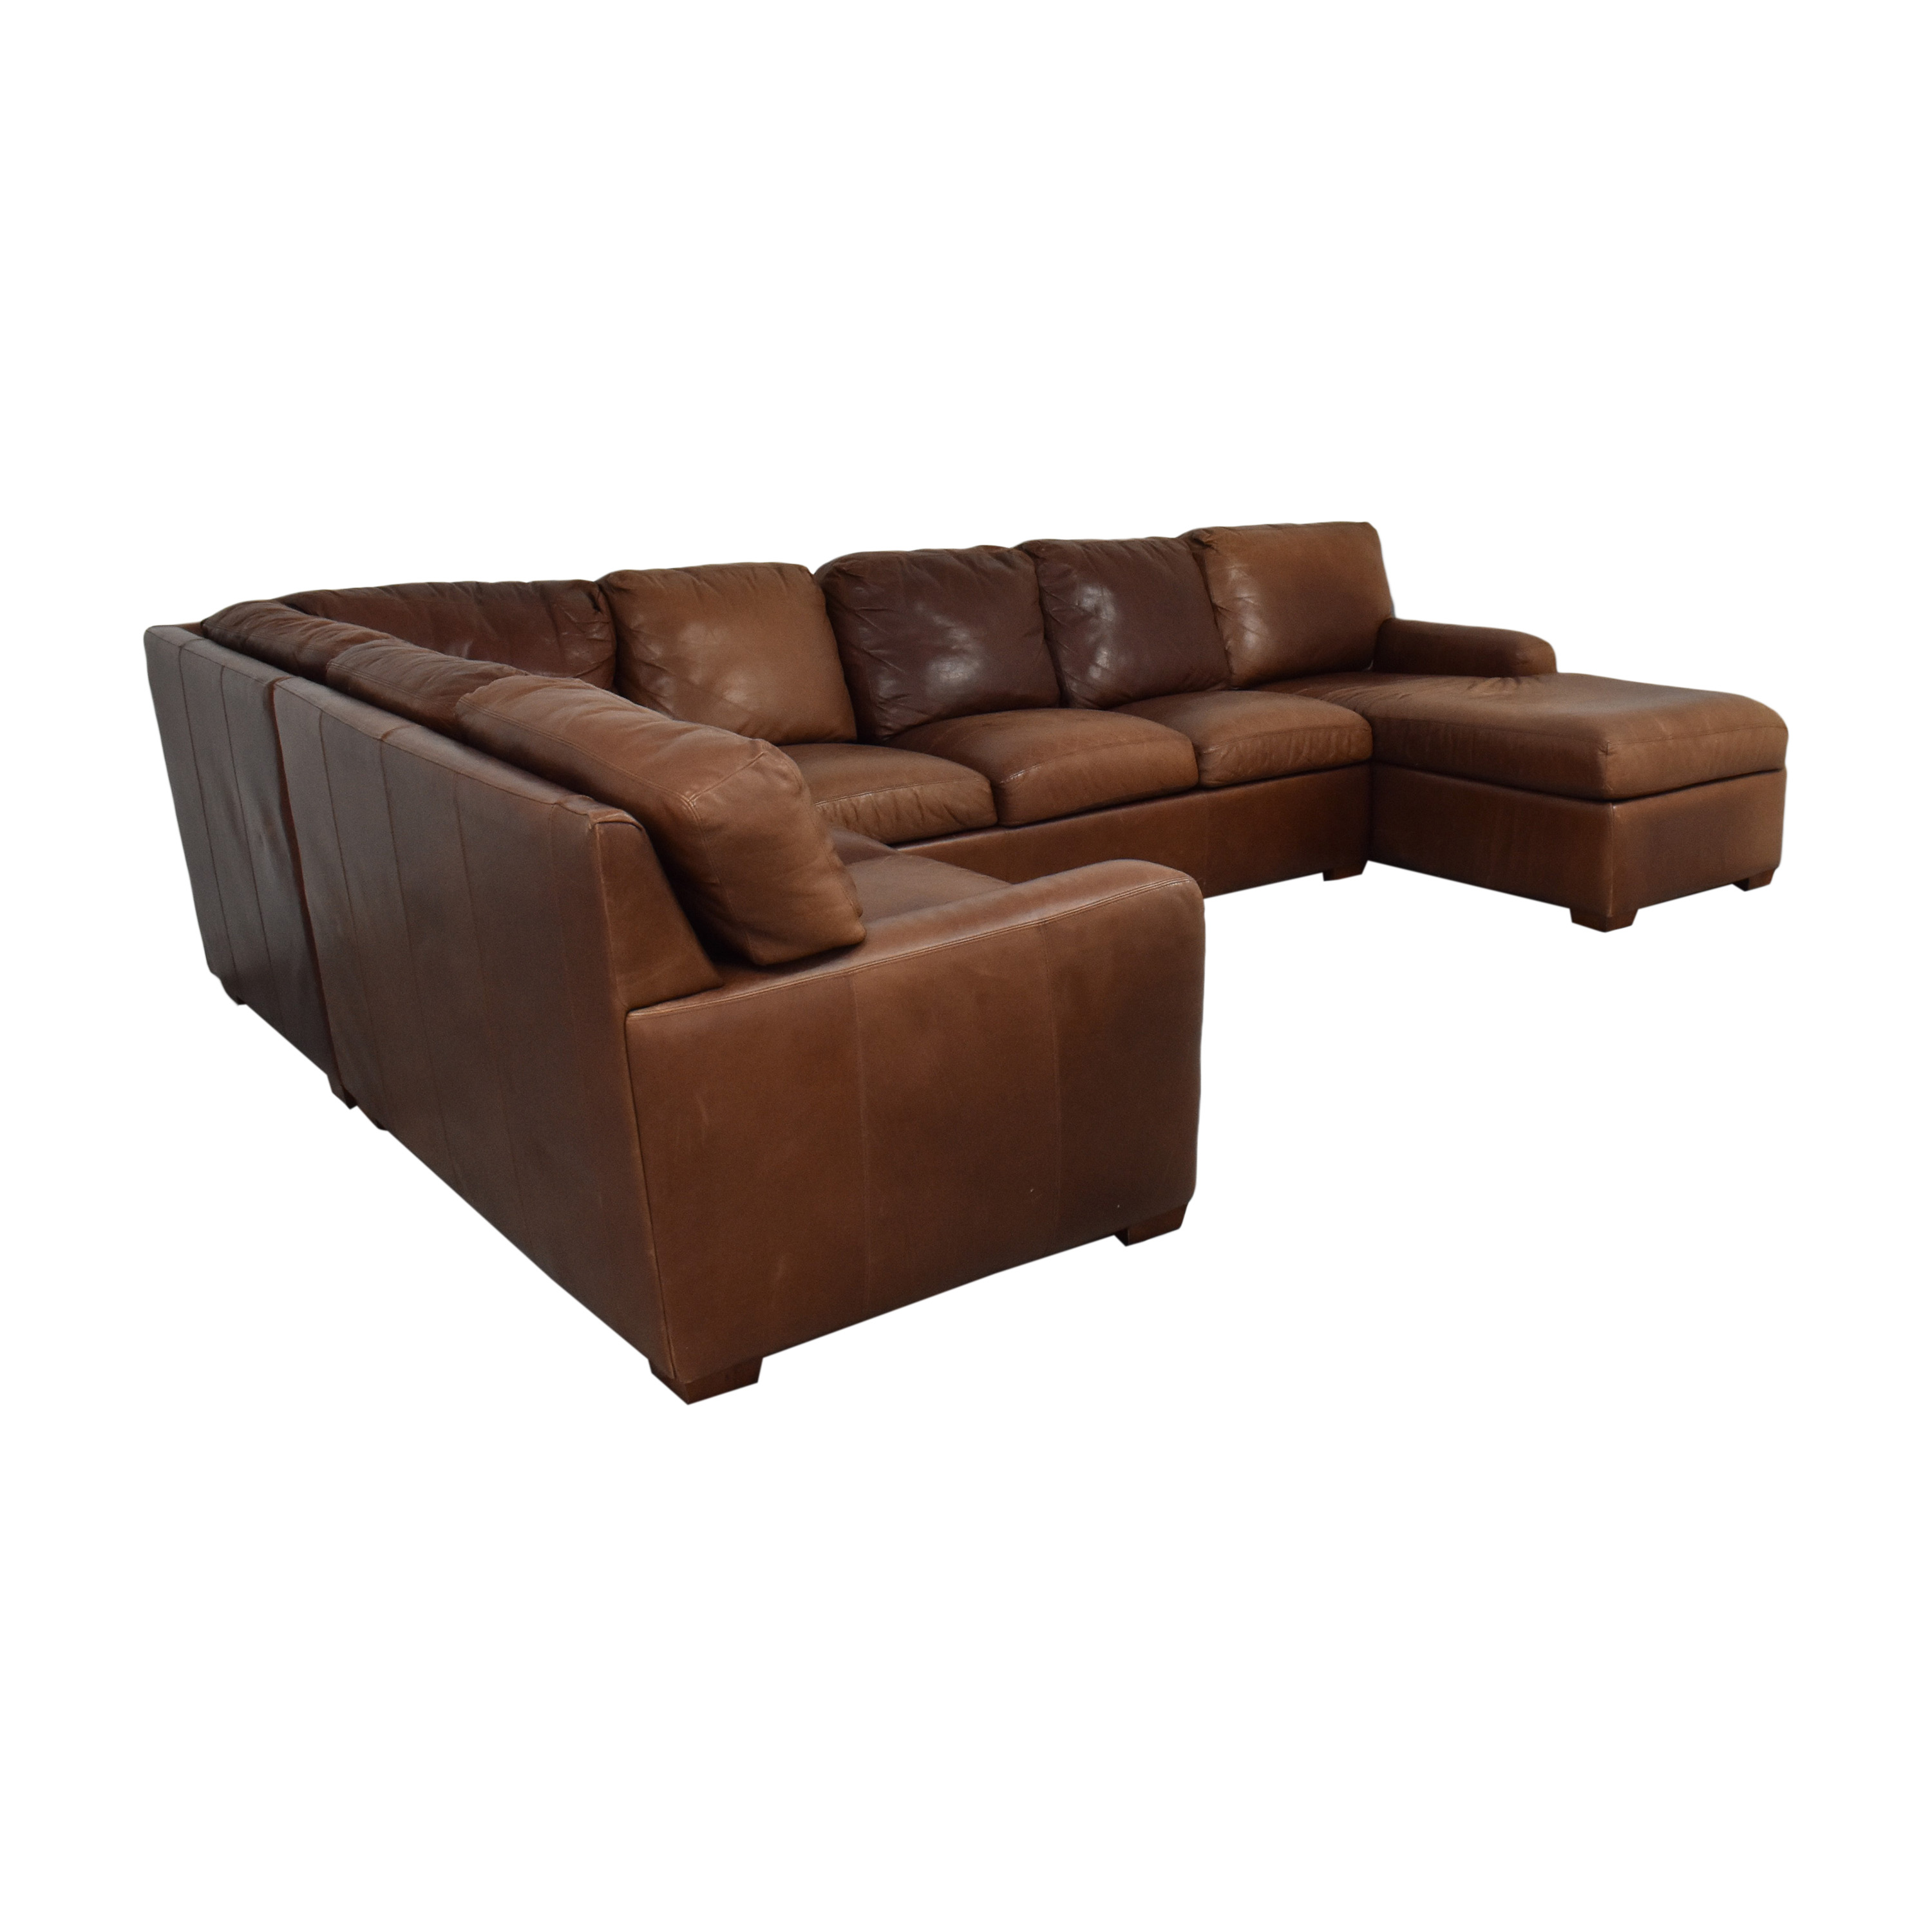 American Leather American Leather Danford Sectional Sofa Sofas